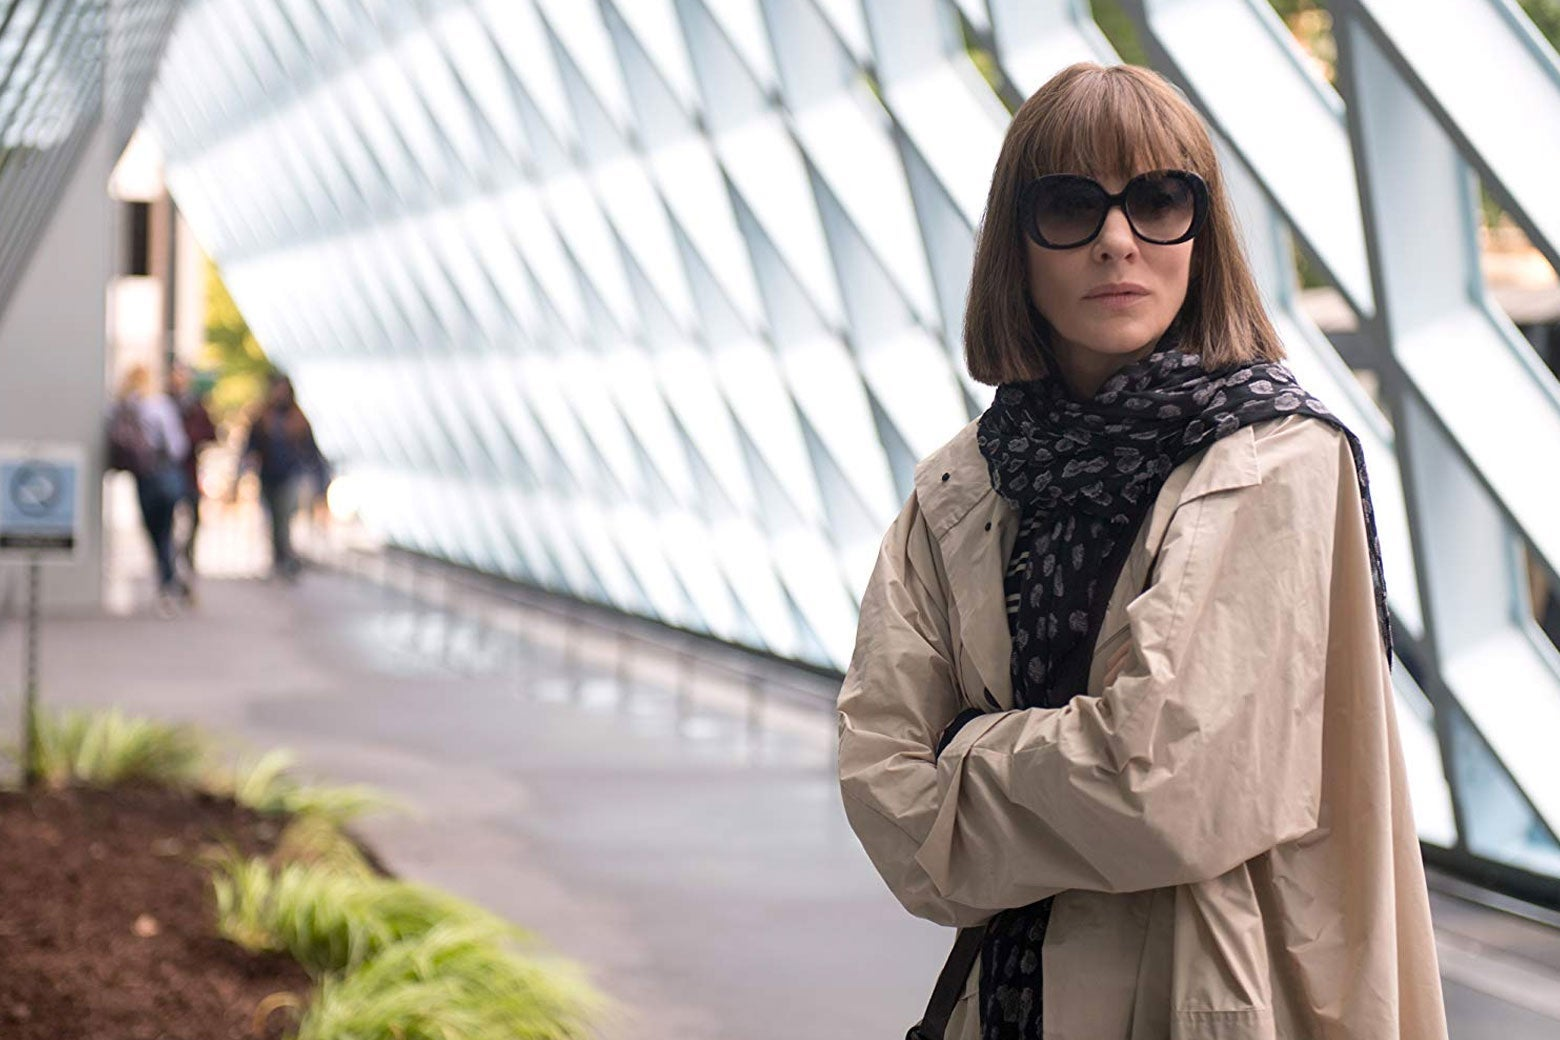 Cate Blanchett stands with her arms crossed in a hallway in this still from Where'd You Go Bernadette